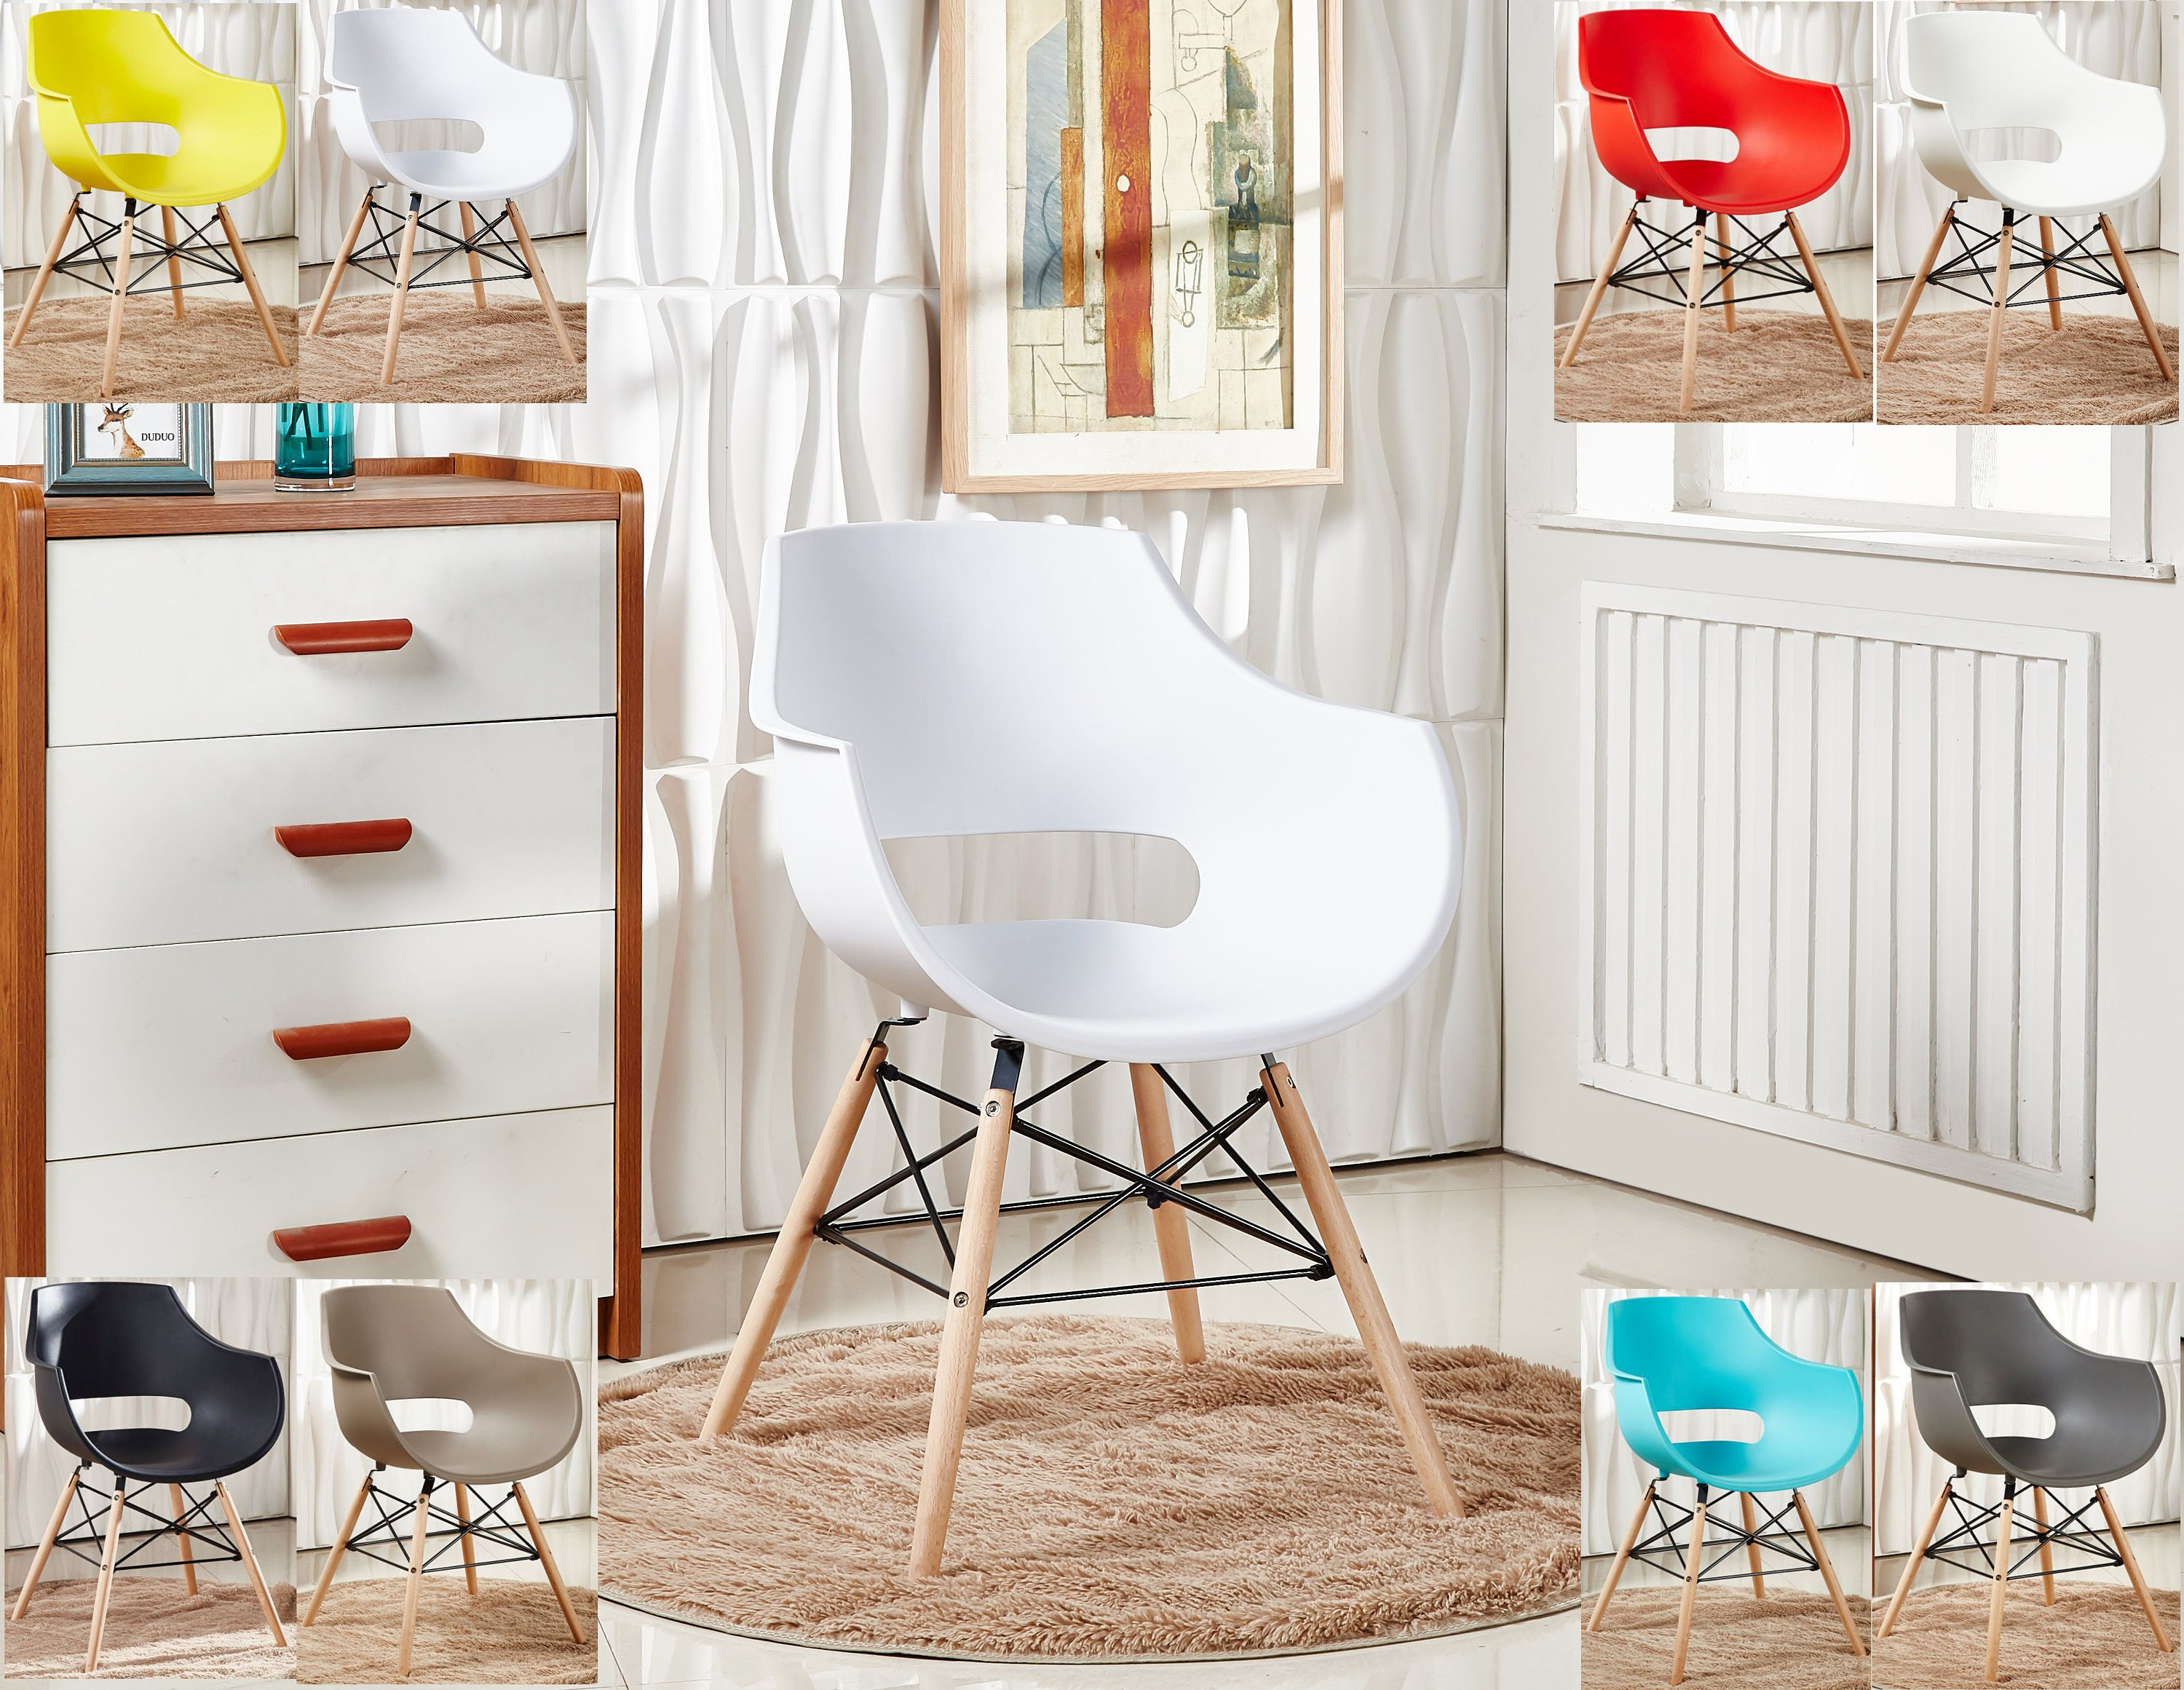 EAMES DAW Style Olivia Chair design  chaise DAW design scandinave Dining Chair or Office Chair